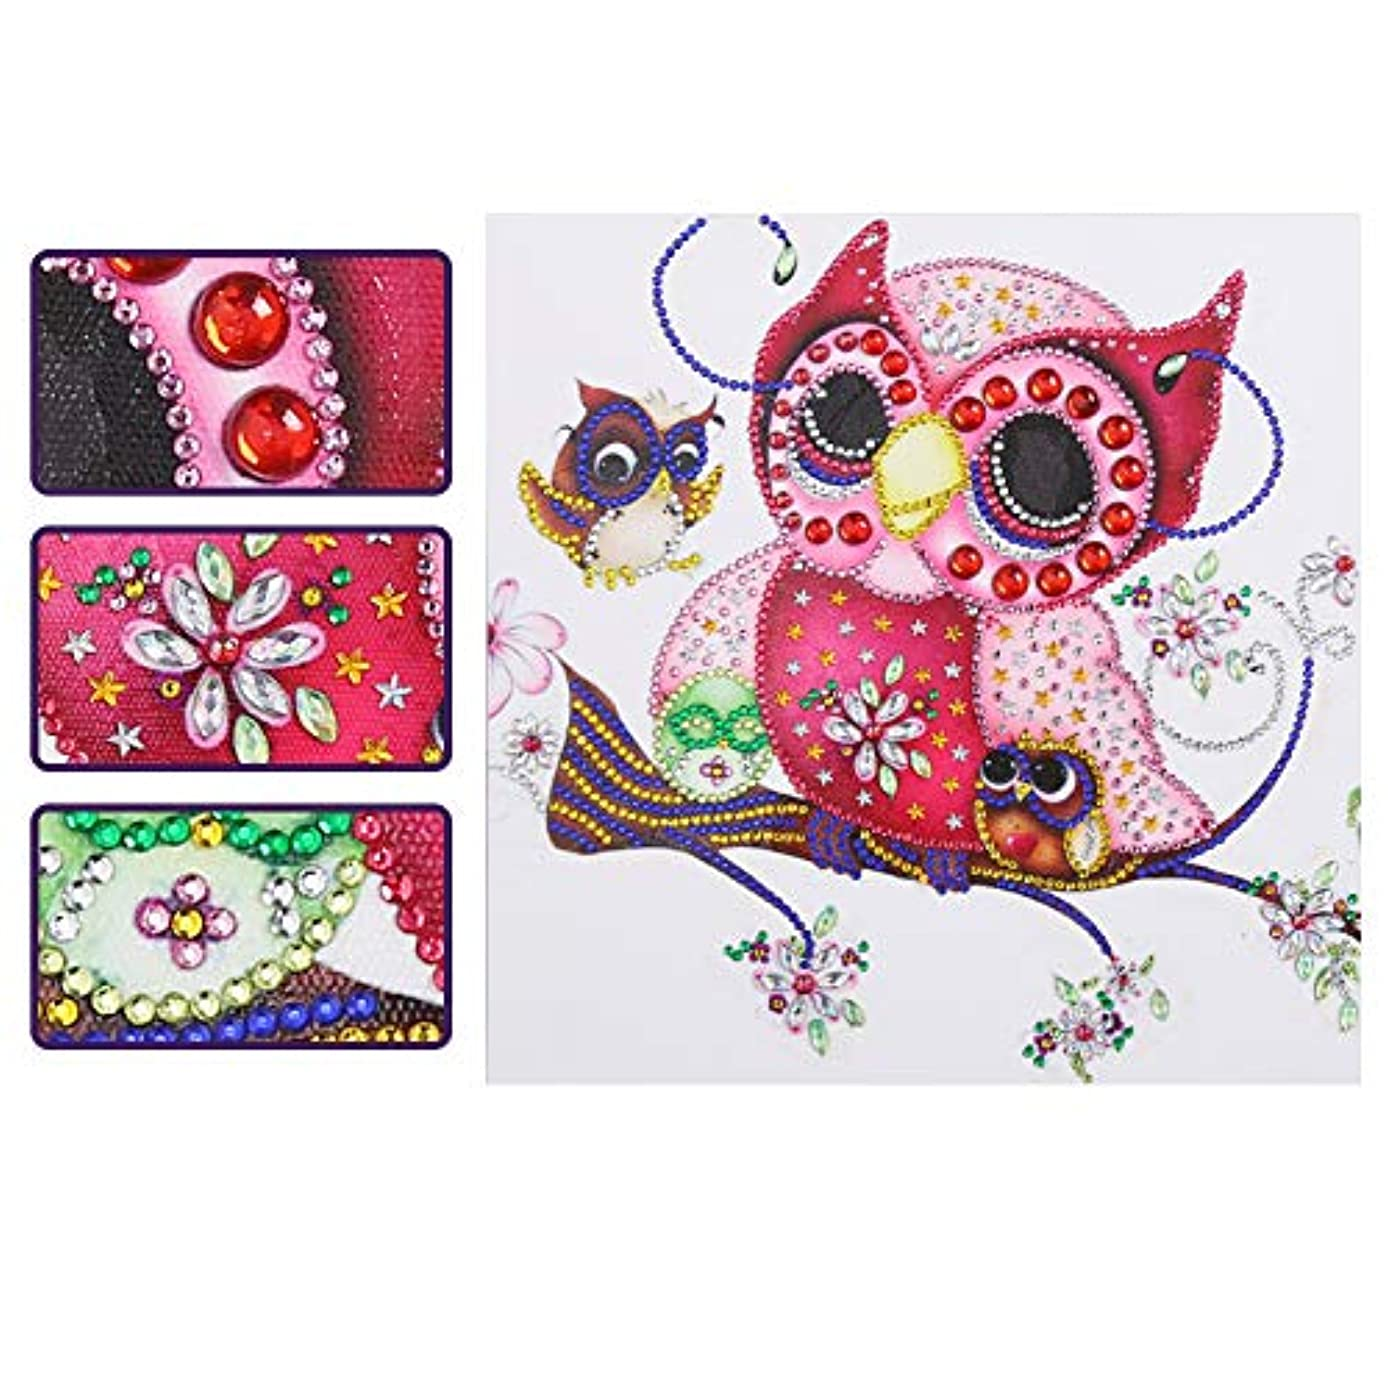 SuperDecor 5D DIY Diamond Painting Special Shaped Rhinestones Partial Drill Crystal Rhinestone Diamond Embroidery Paintings Arts Craft for Adults or Kids,Owl Stands on The Tree Trunk 12x12 Inch